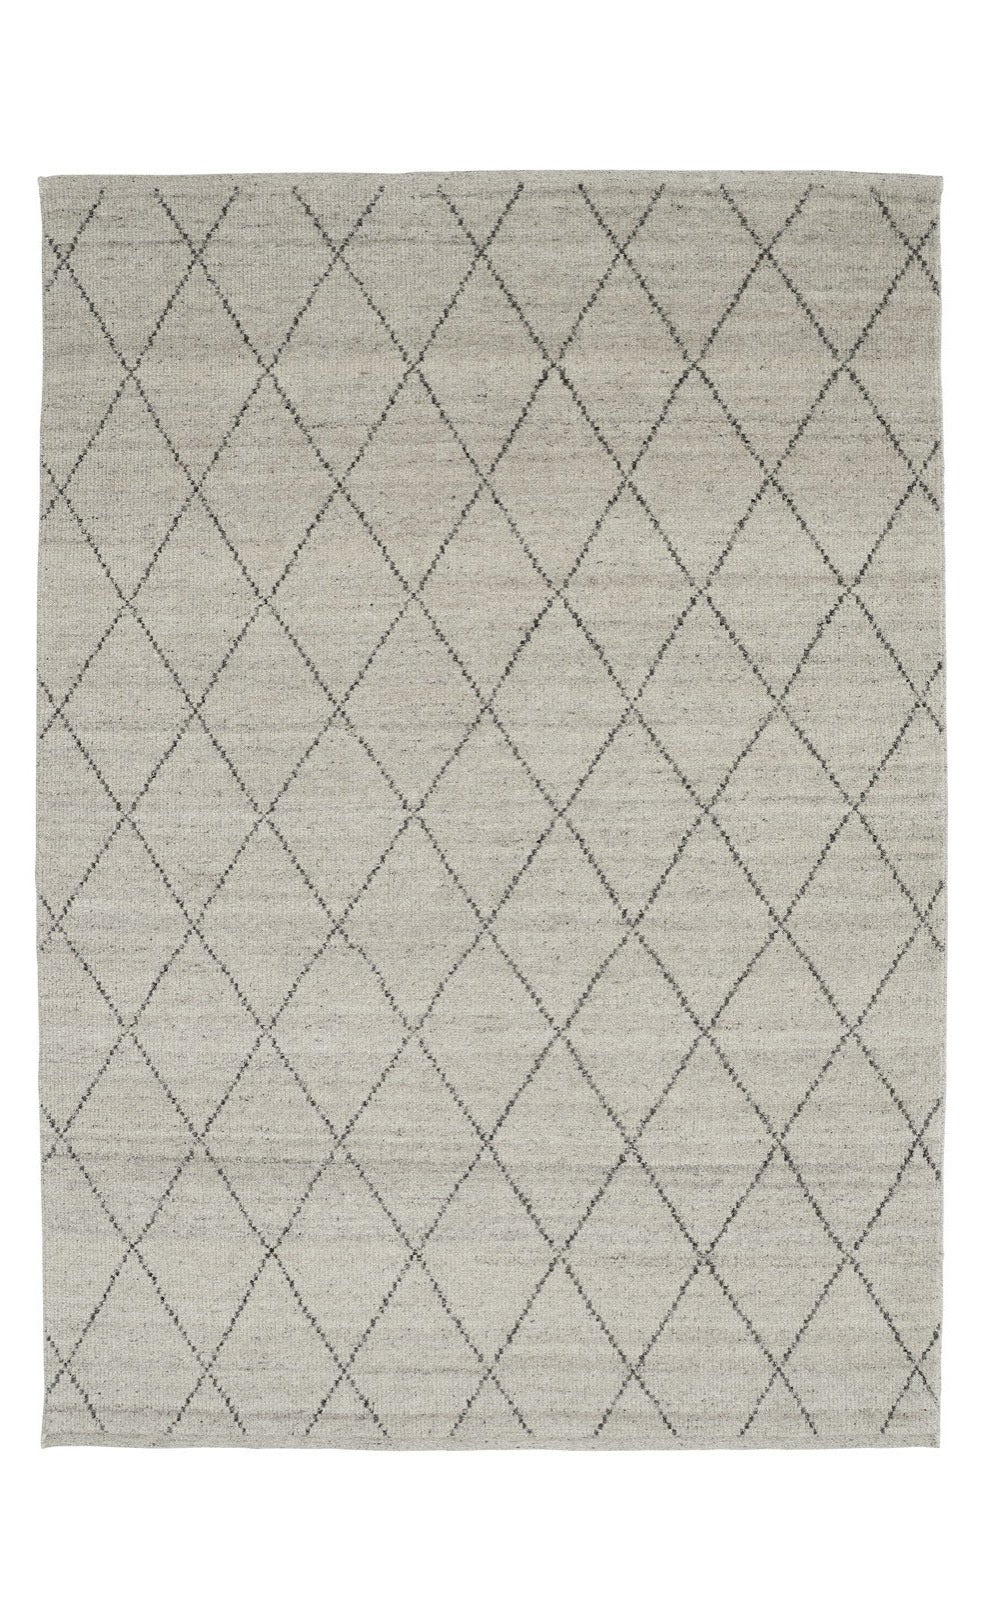 buy Limestone Berber Knot Atlas - Hall Runner online